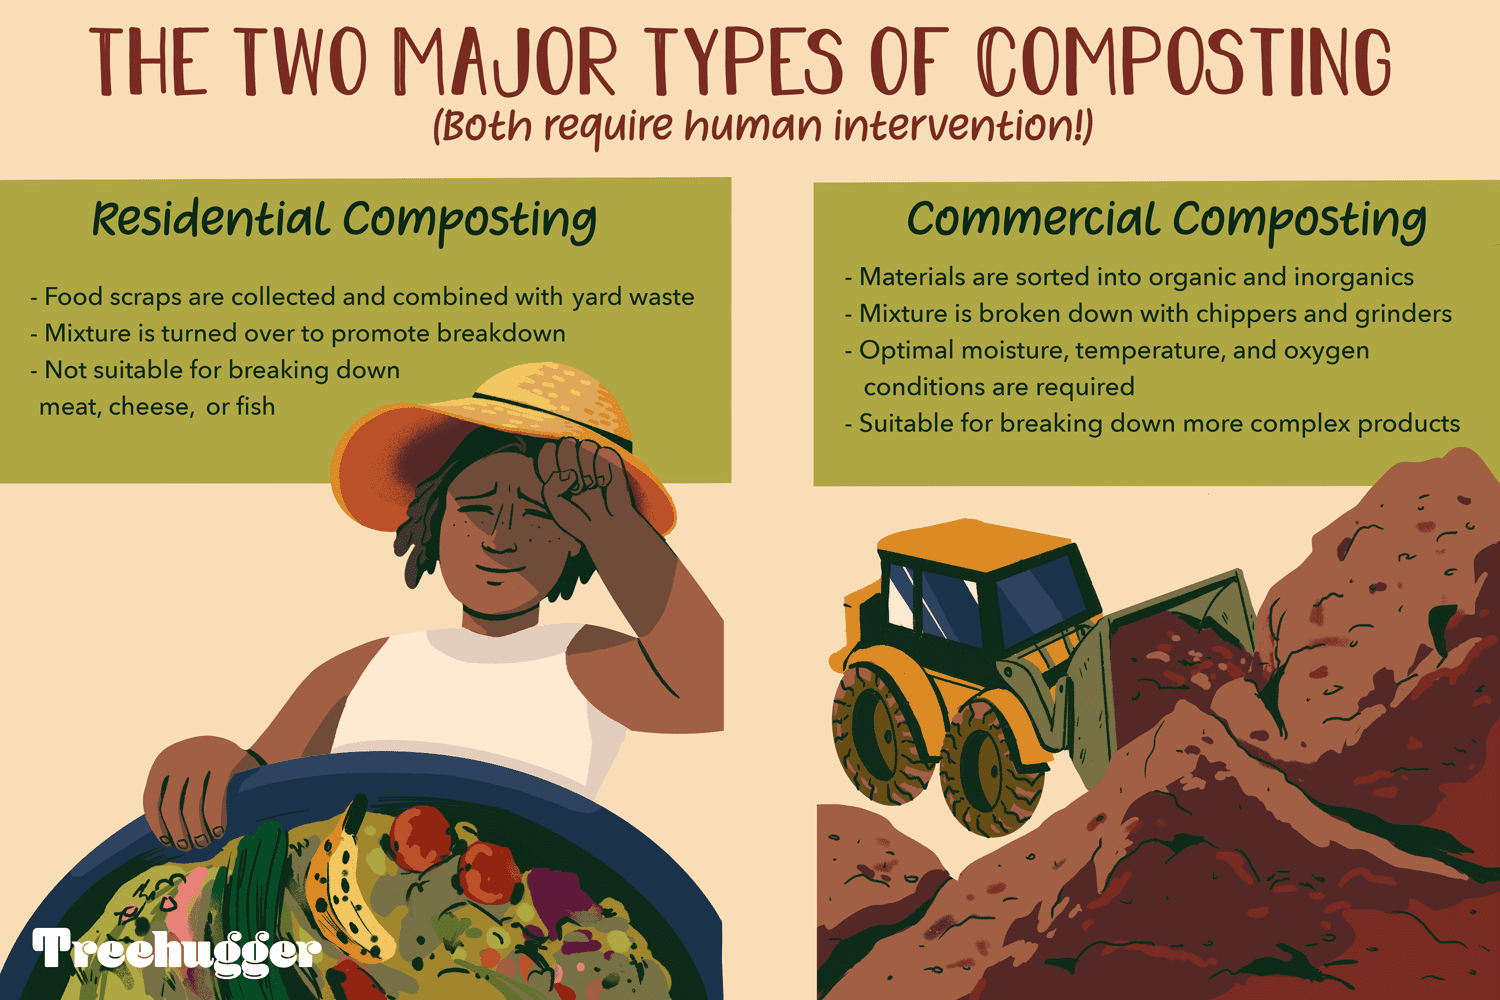 the two major types of composting illo